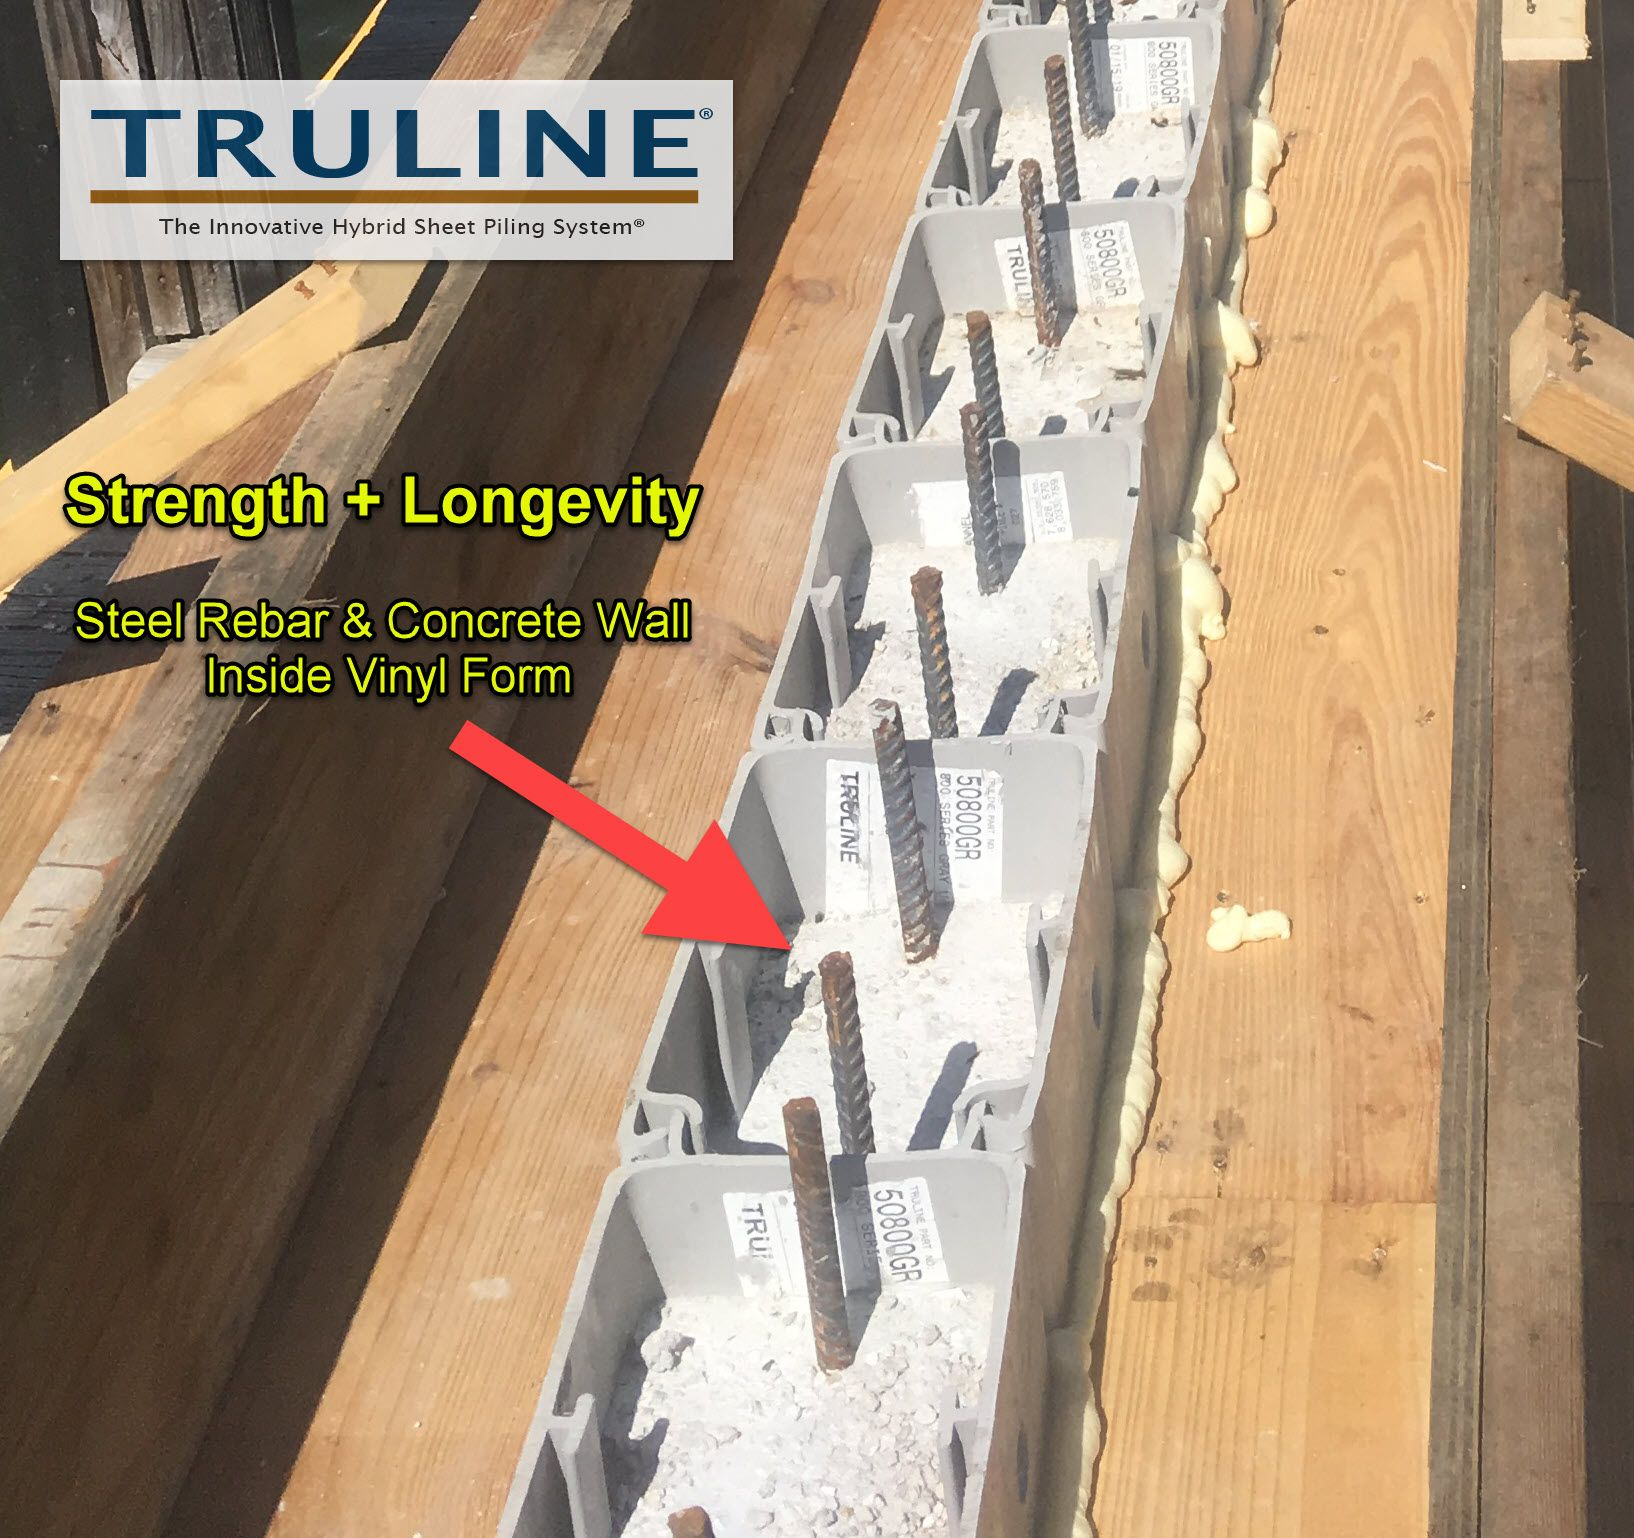 Truline Offers Strength And Longevity With Steel Reinforced Concrete Seawall Or Bulkhead Inside Vinyl Form Sea Wall Retaining Wall Concrete